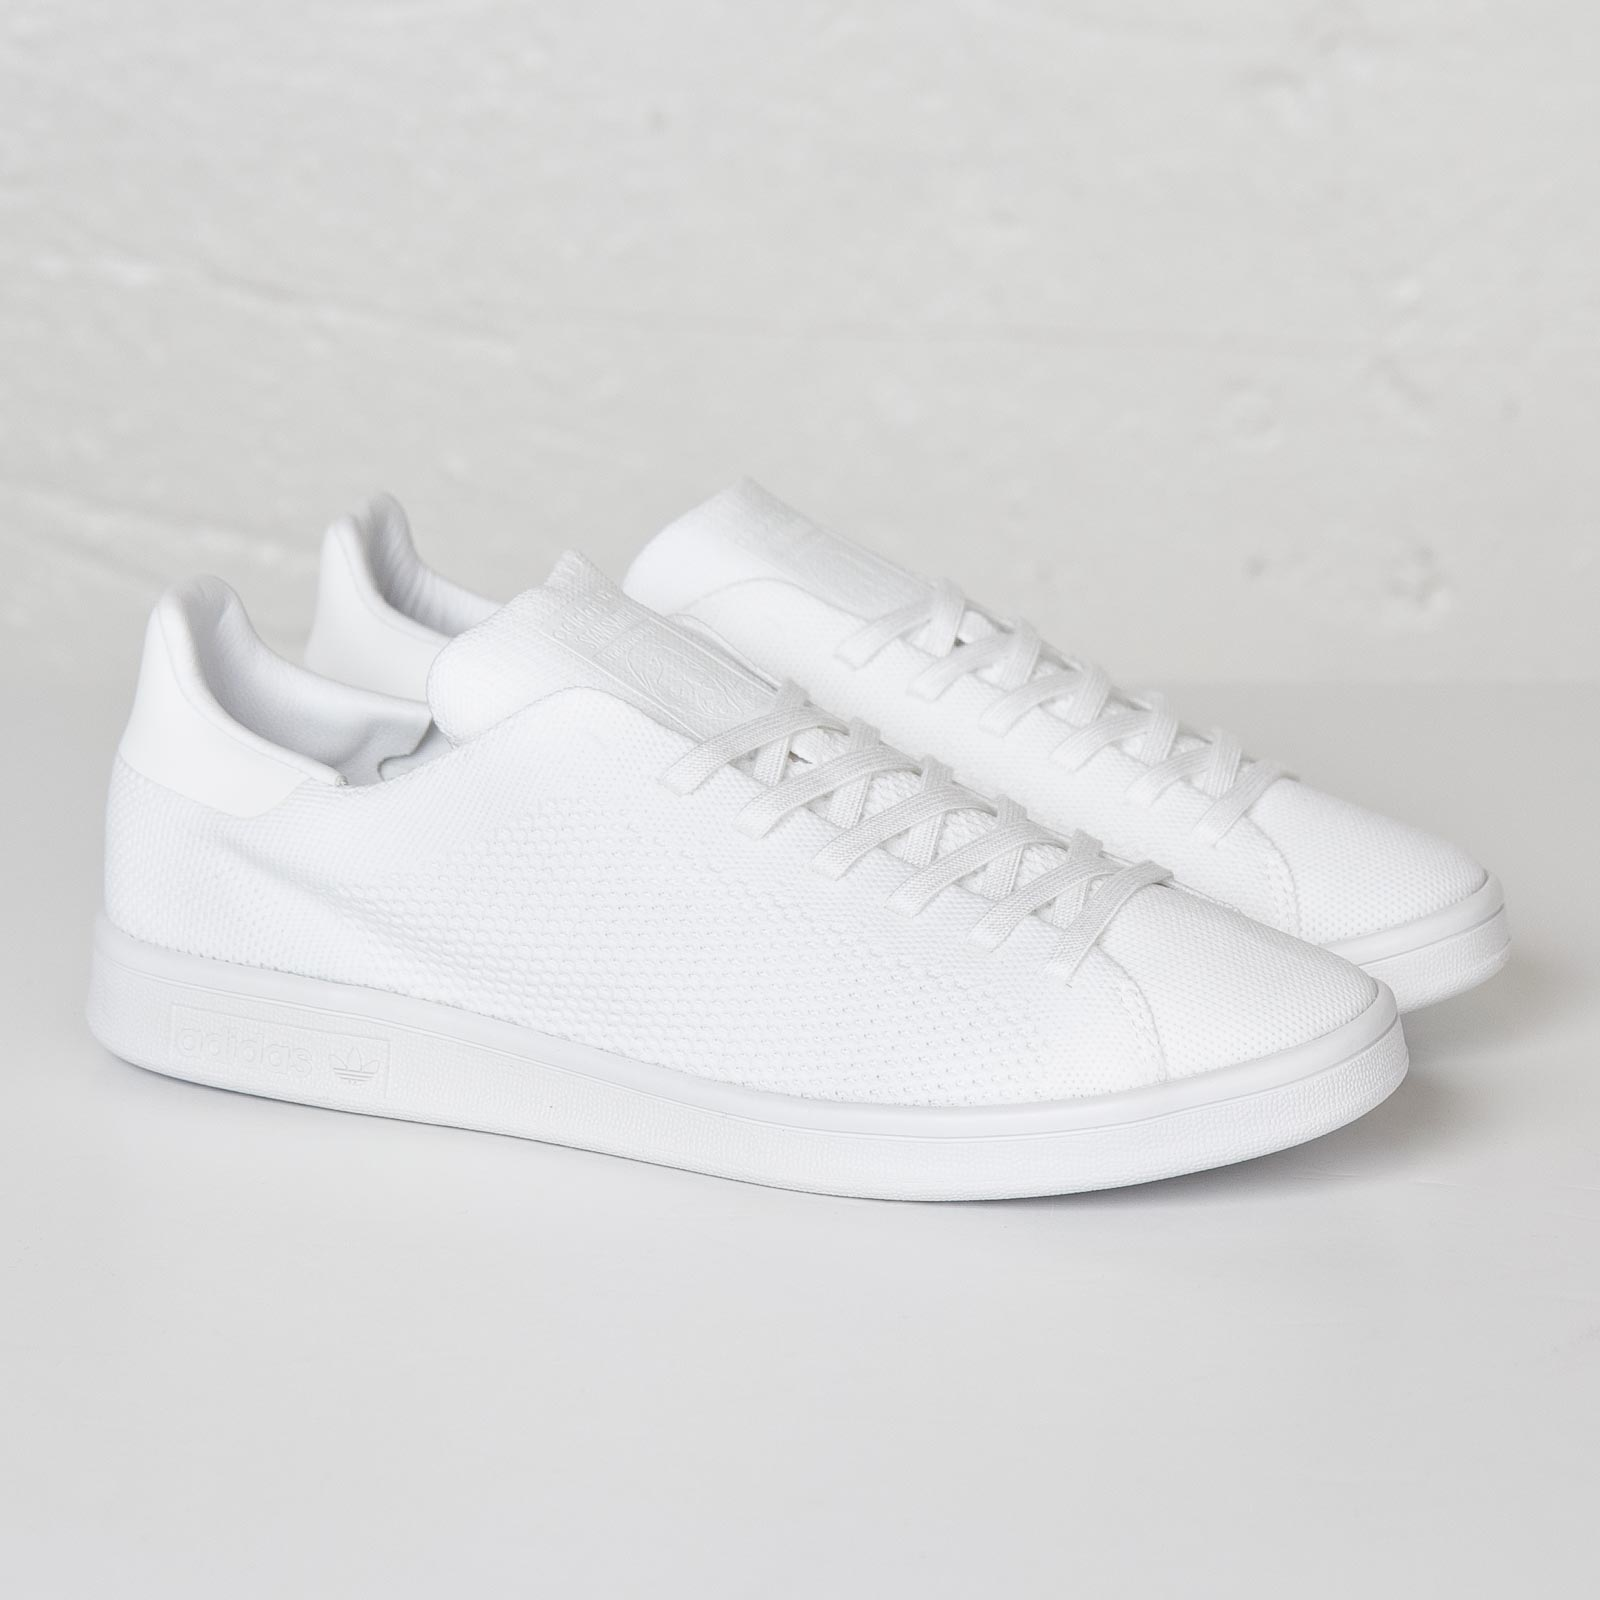 9bd191b8 wholesale adidas stan smith all white womens d47cf fc2c7